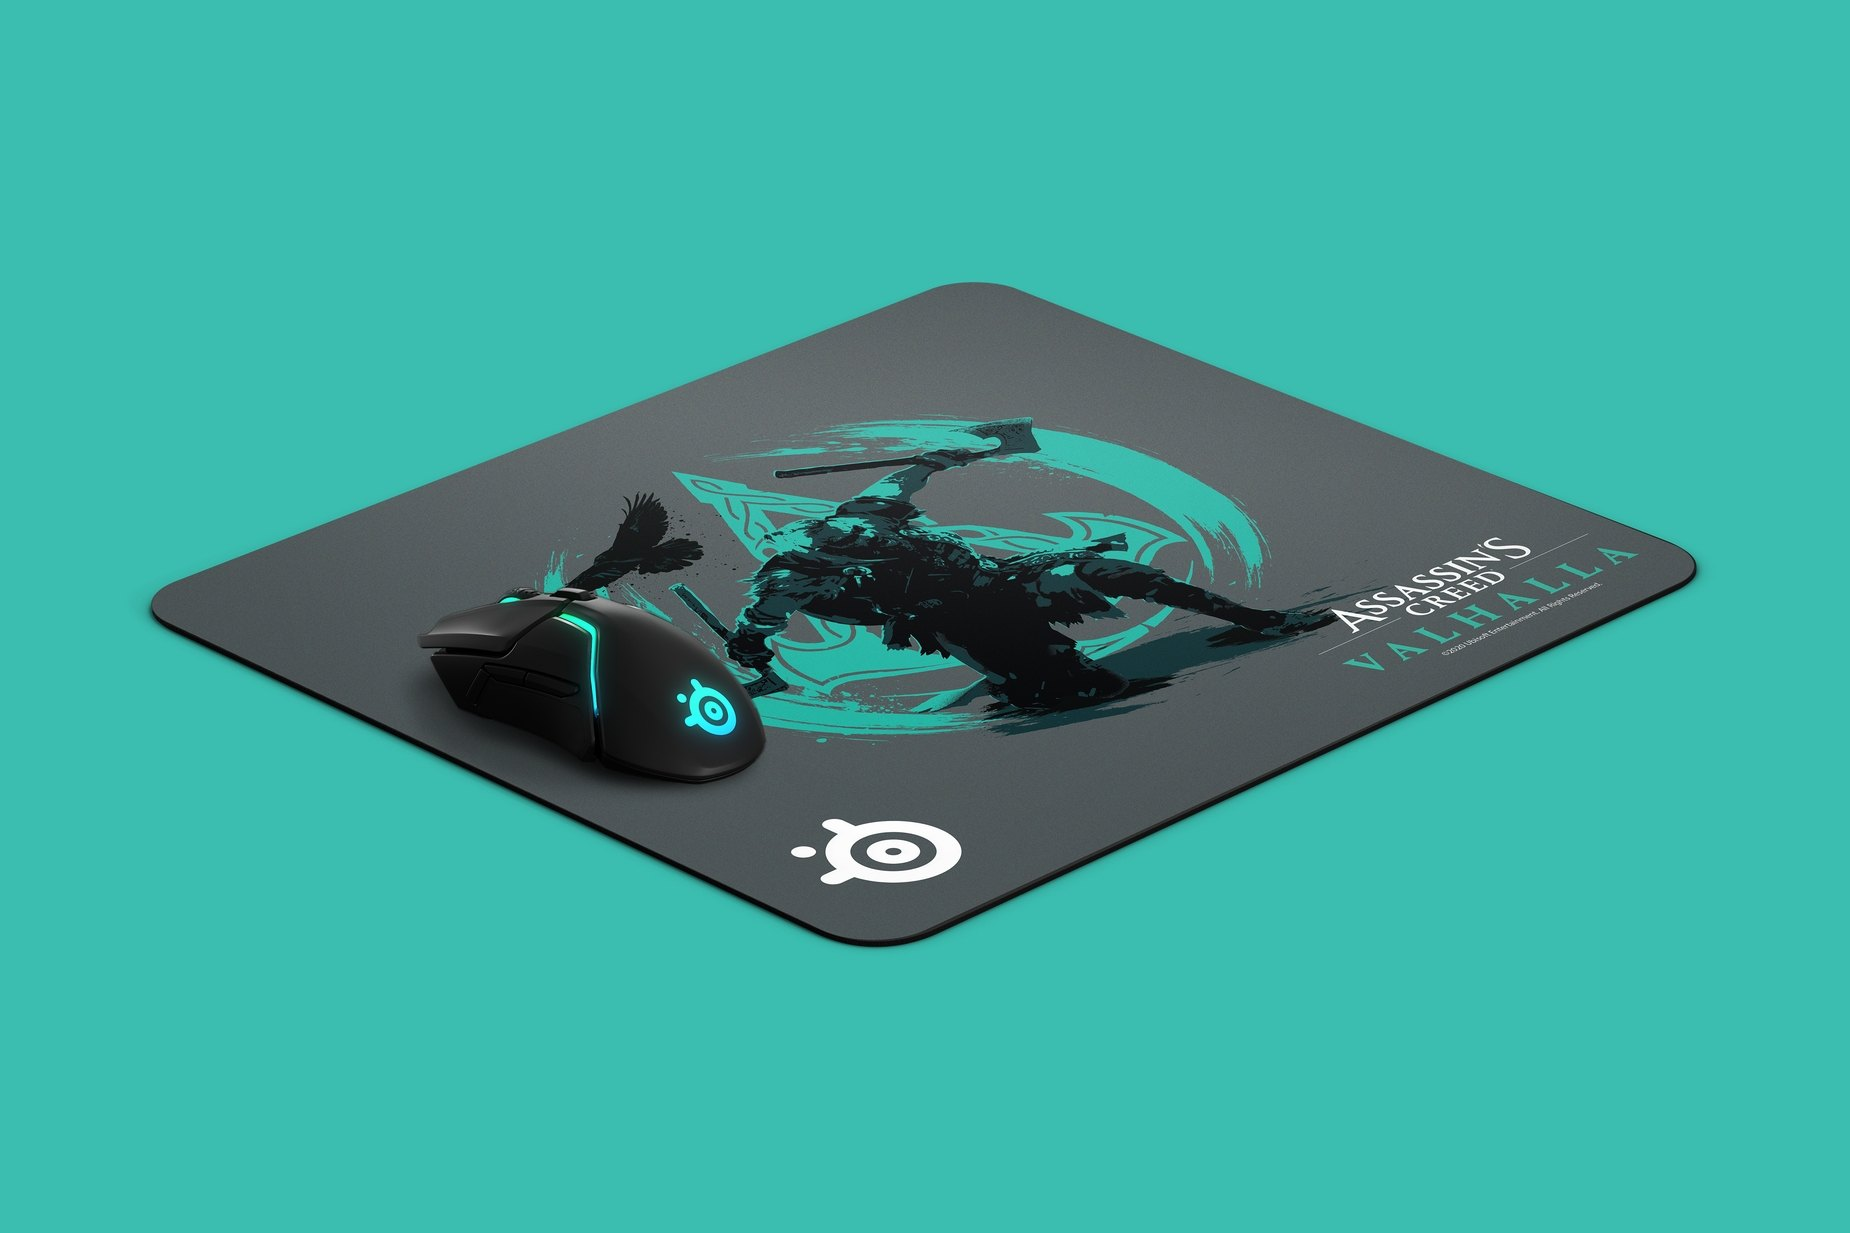 A close-up of the QcK Large Assassin's Creed Valhalla Edition mousepad.